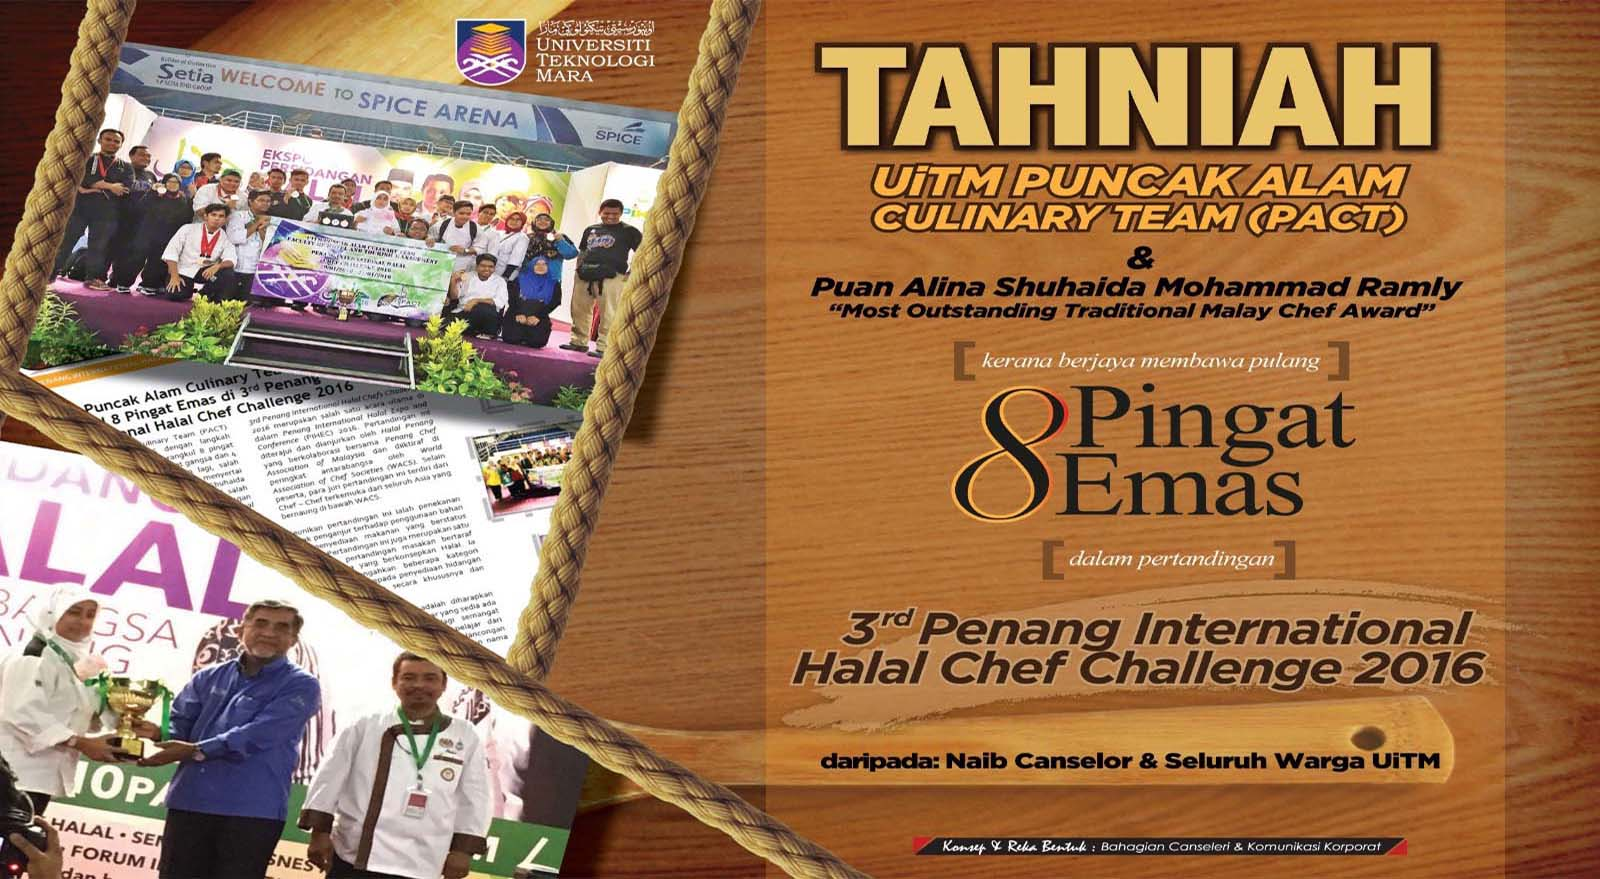 3rd Penang International Halal Chef Challenge 2016